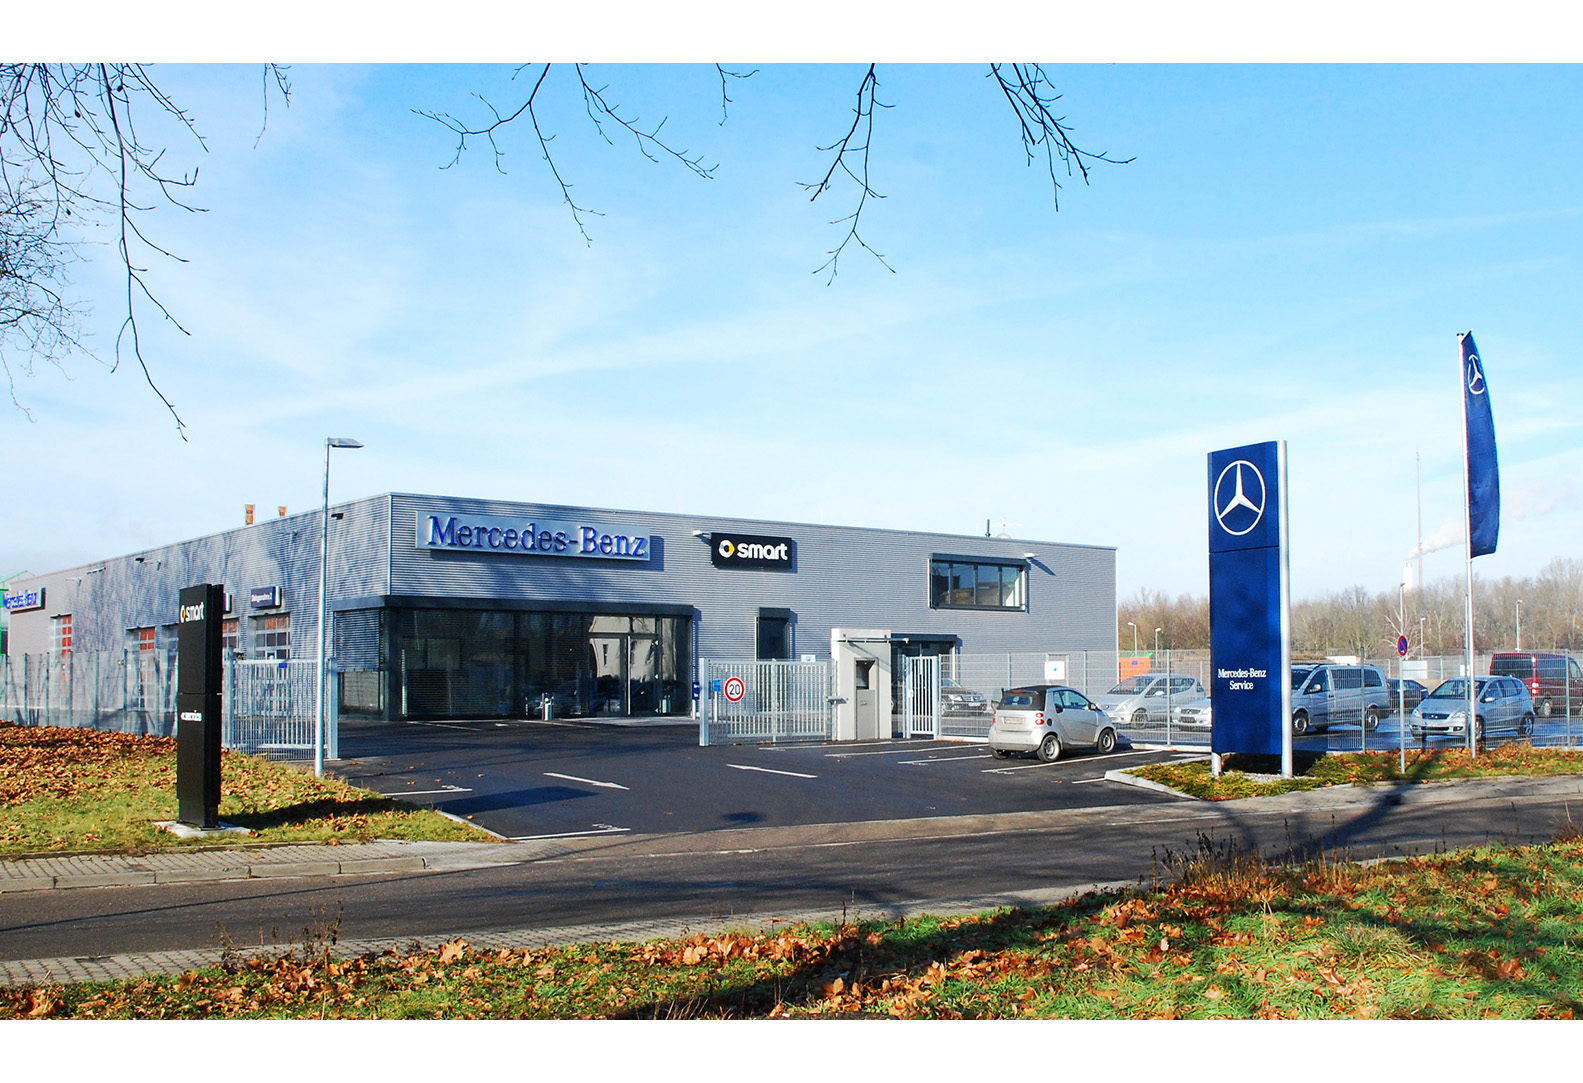 Mercedes Benz Servicebetrieb in Wörth